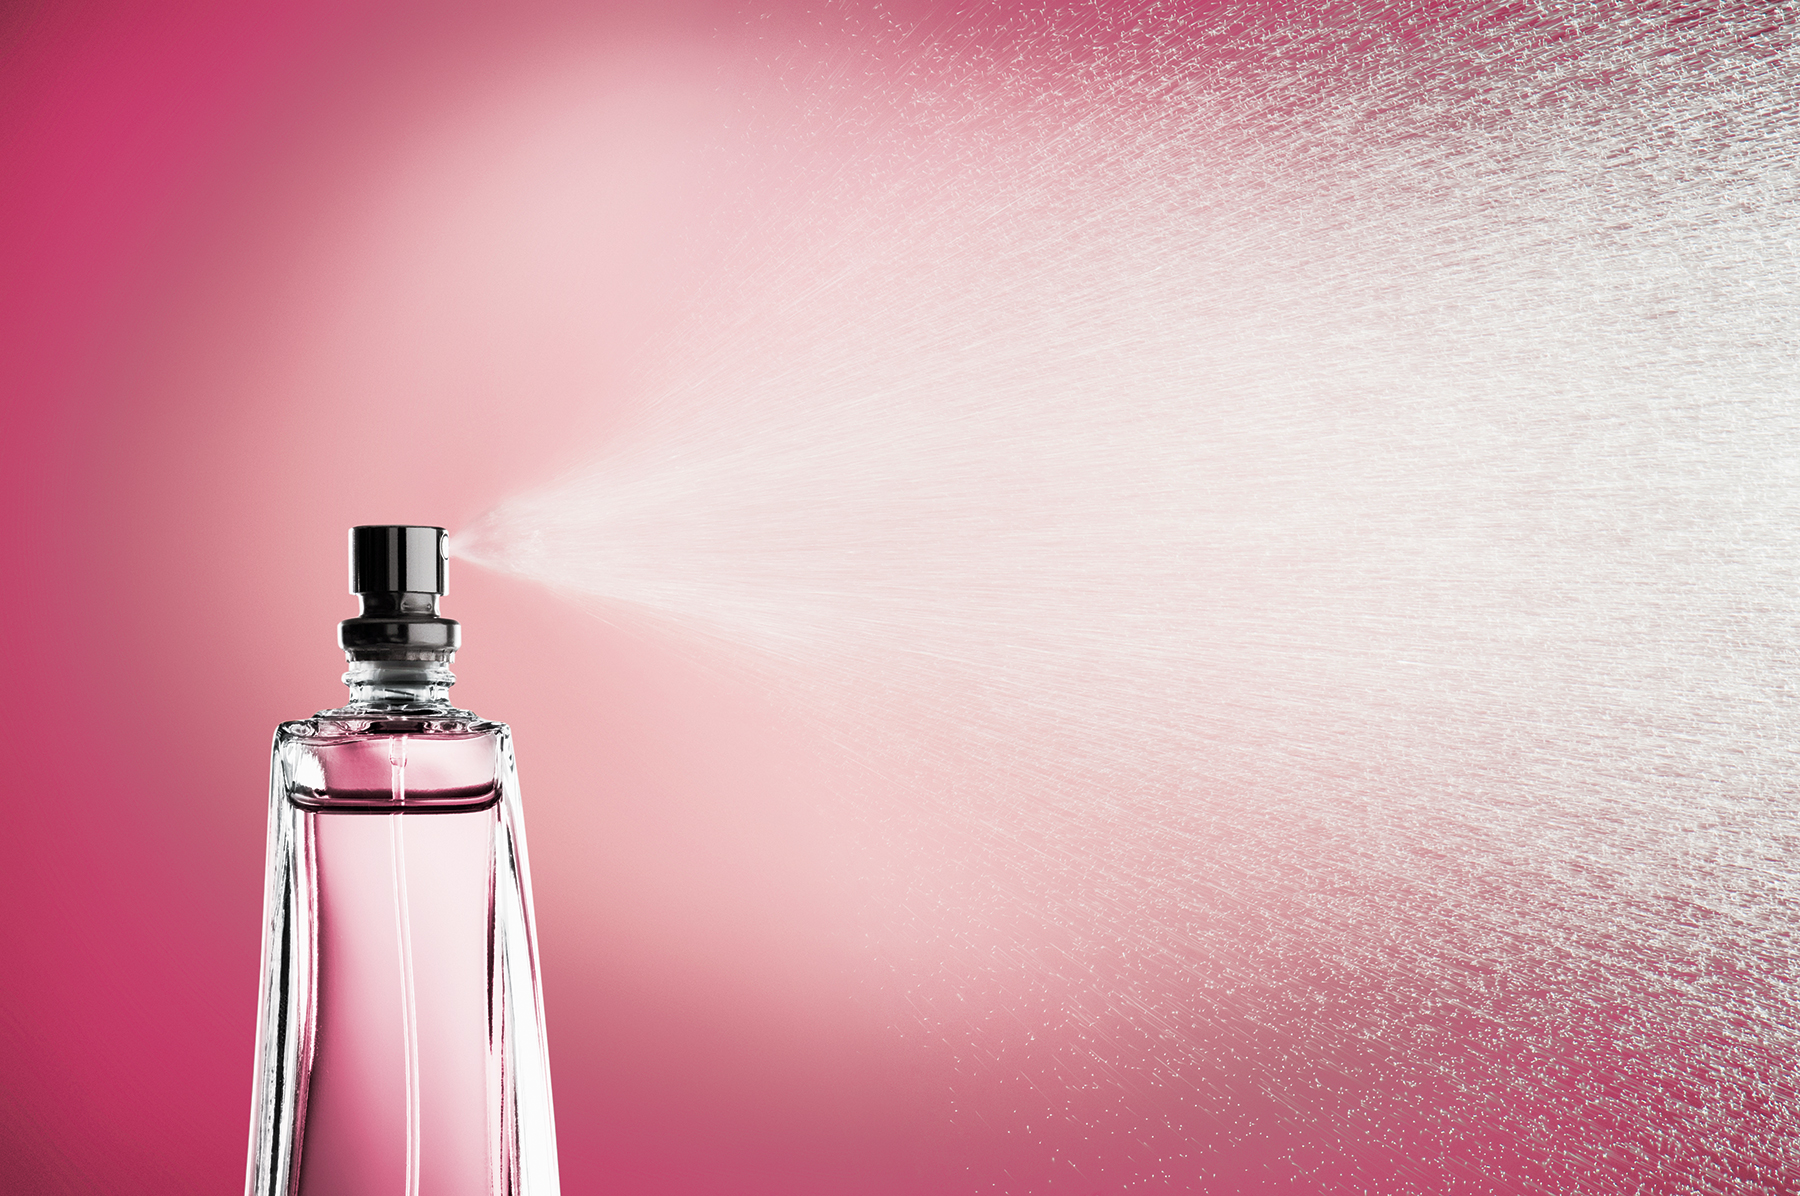 Glass bottle of perfume spraying mist